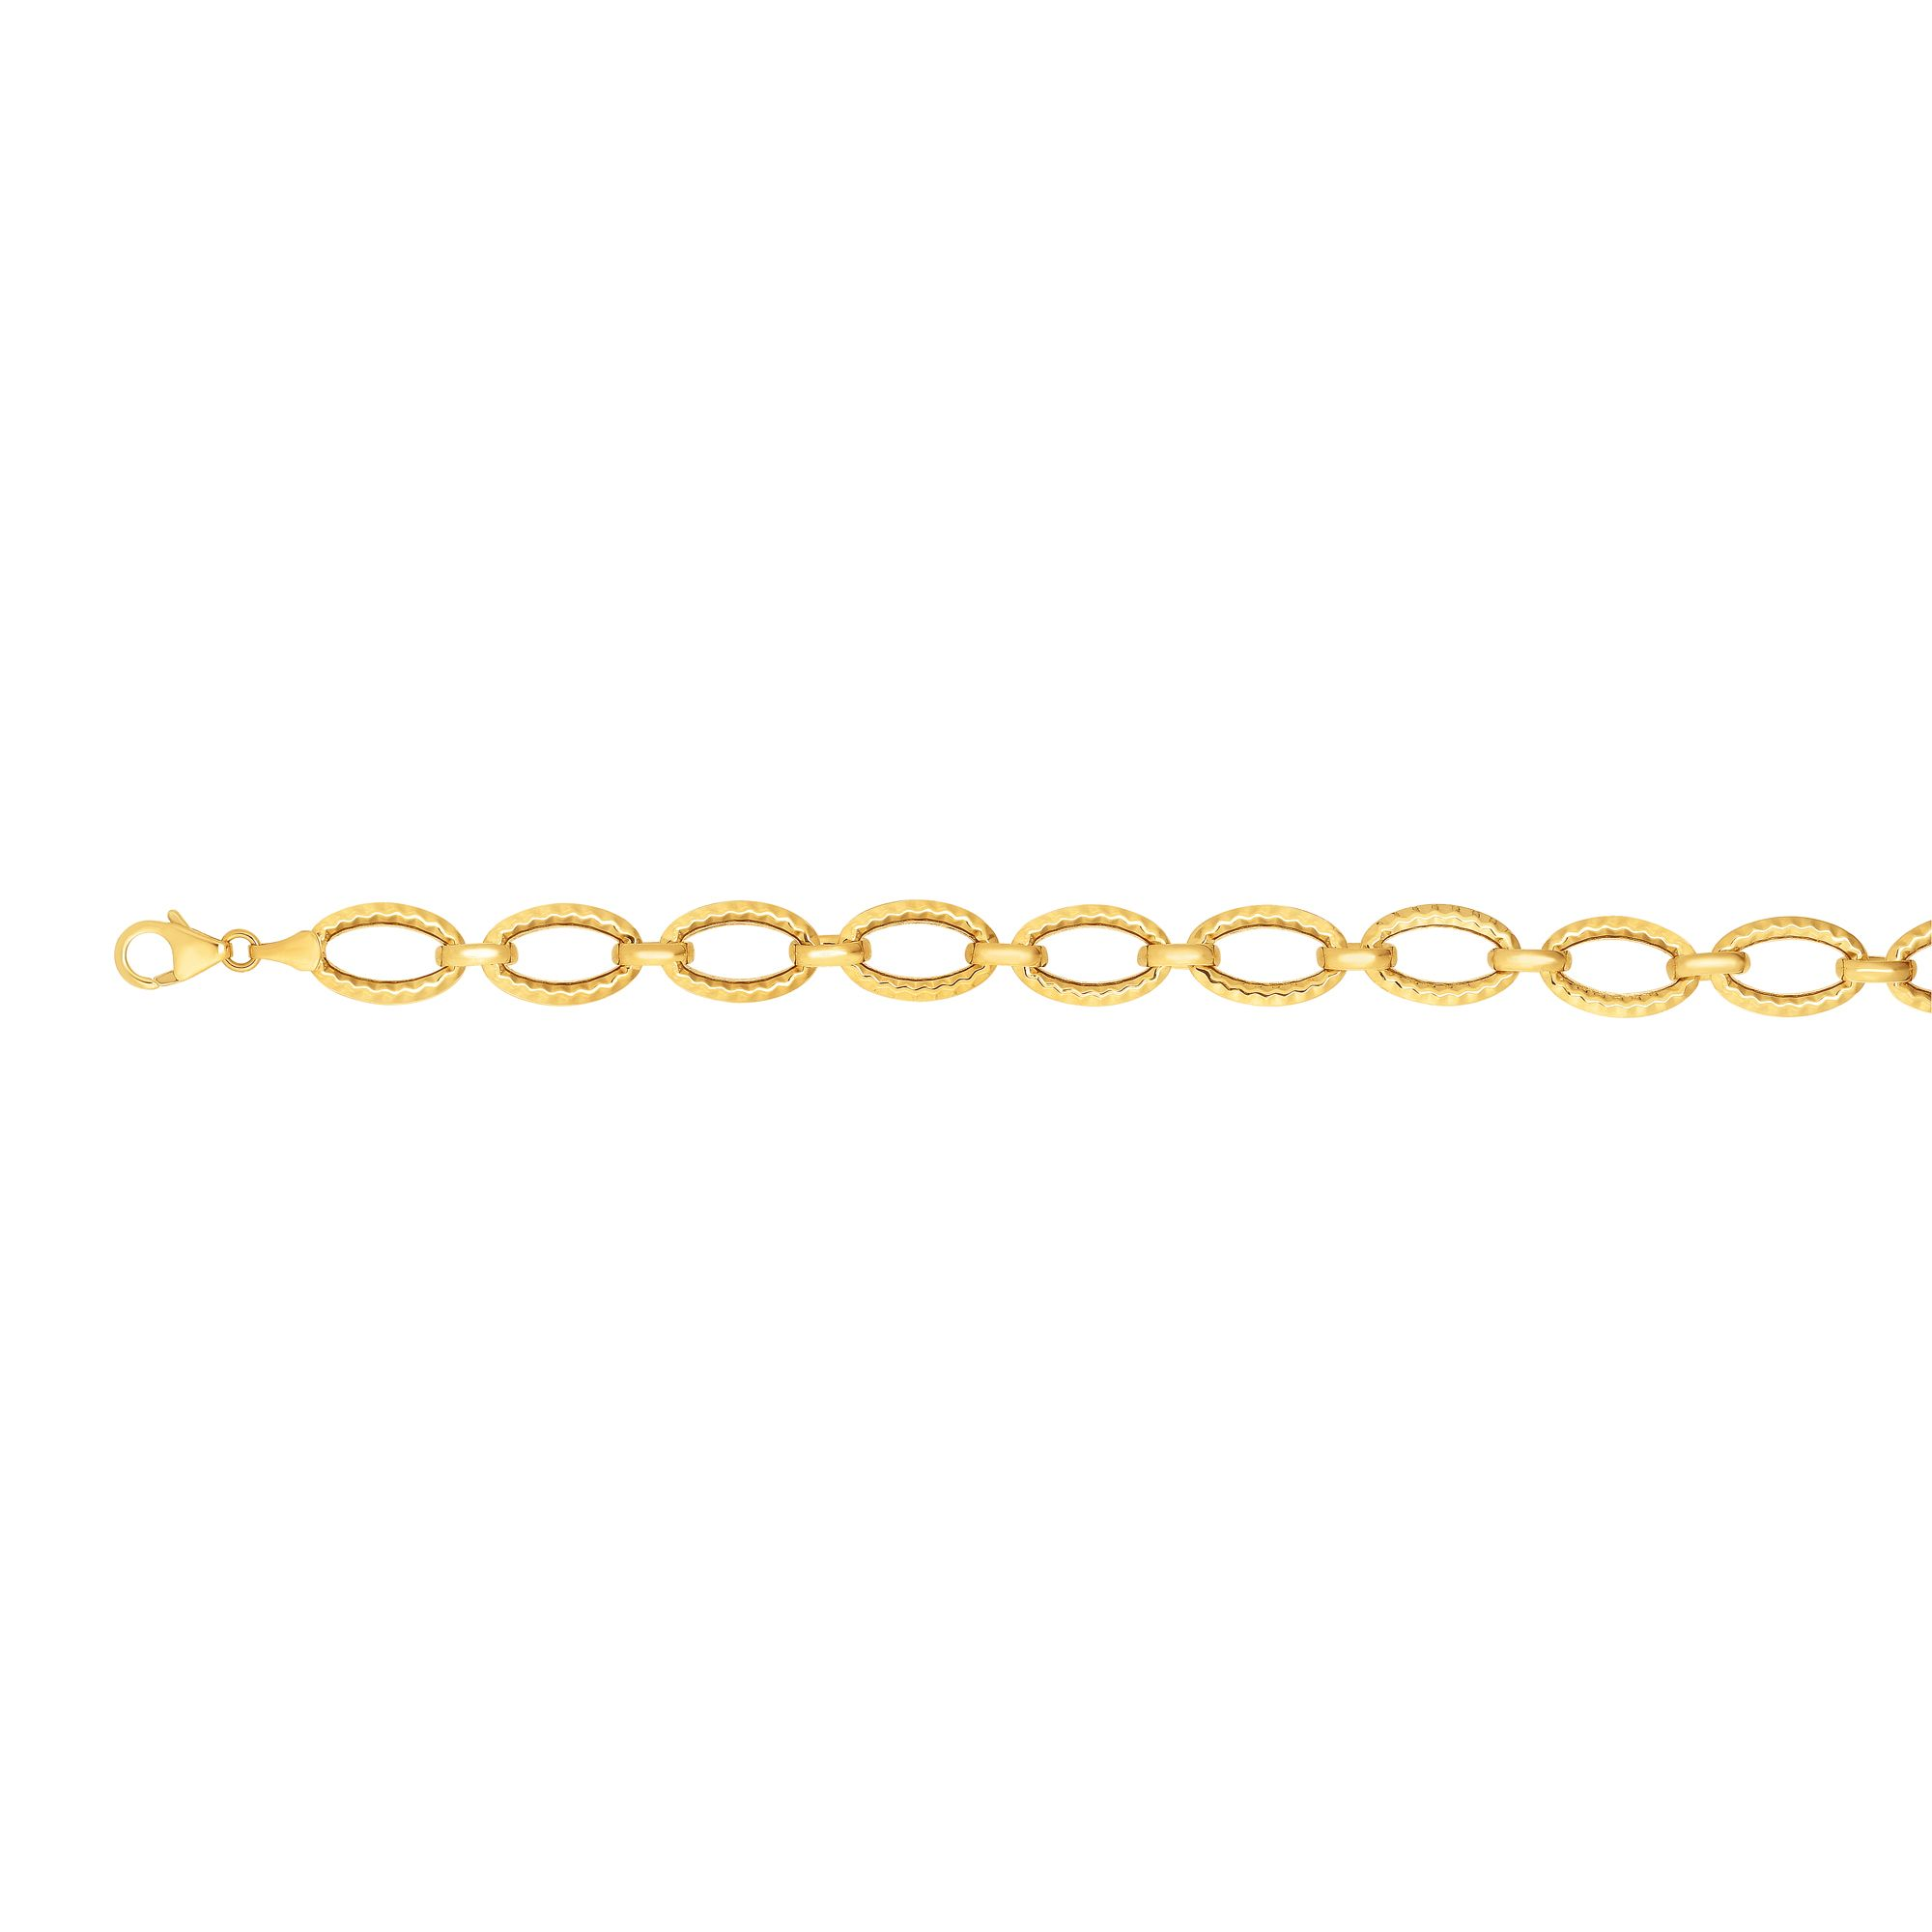 14kt Gold 7.25 inches Yellow Finish 8.6mm Shiny+Diamond Cut Oval Fancy Bracelet with Lobster Clasp